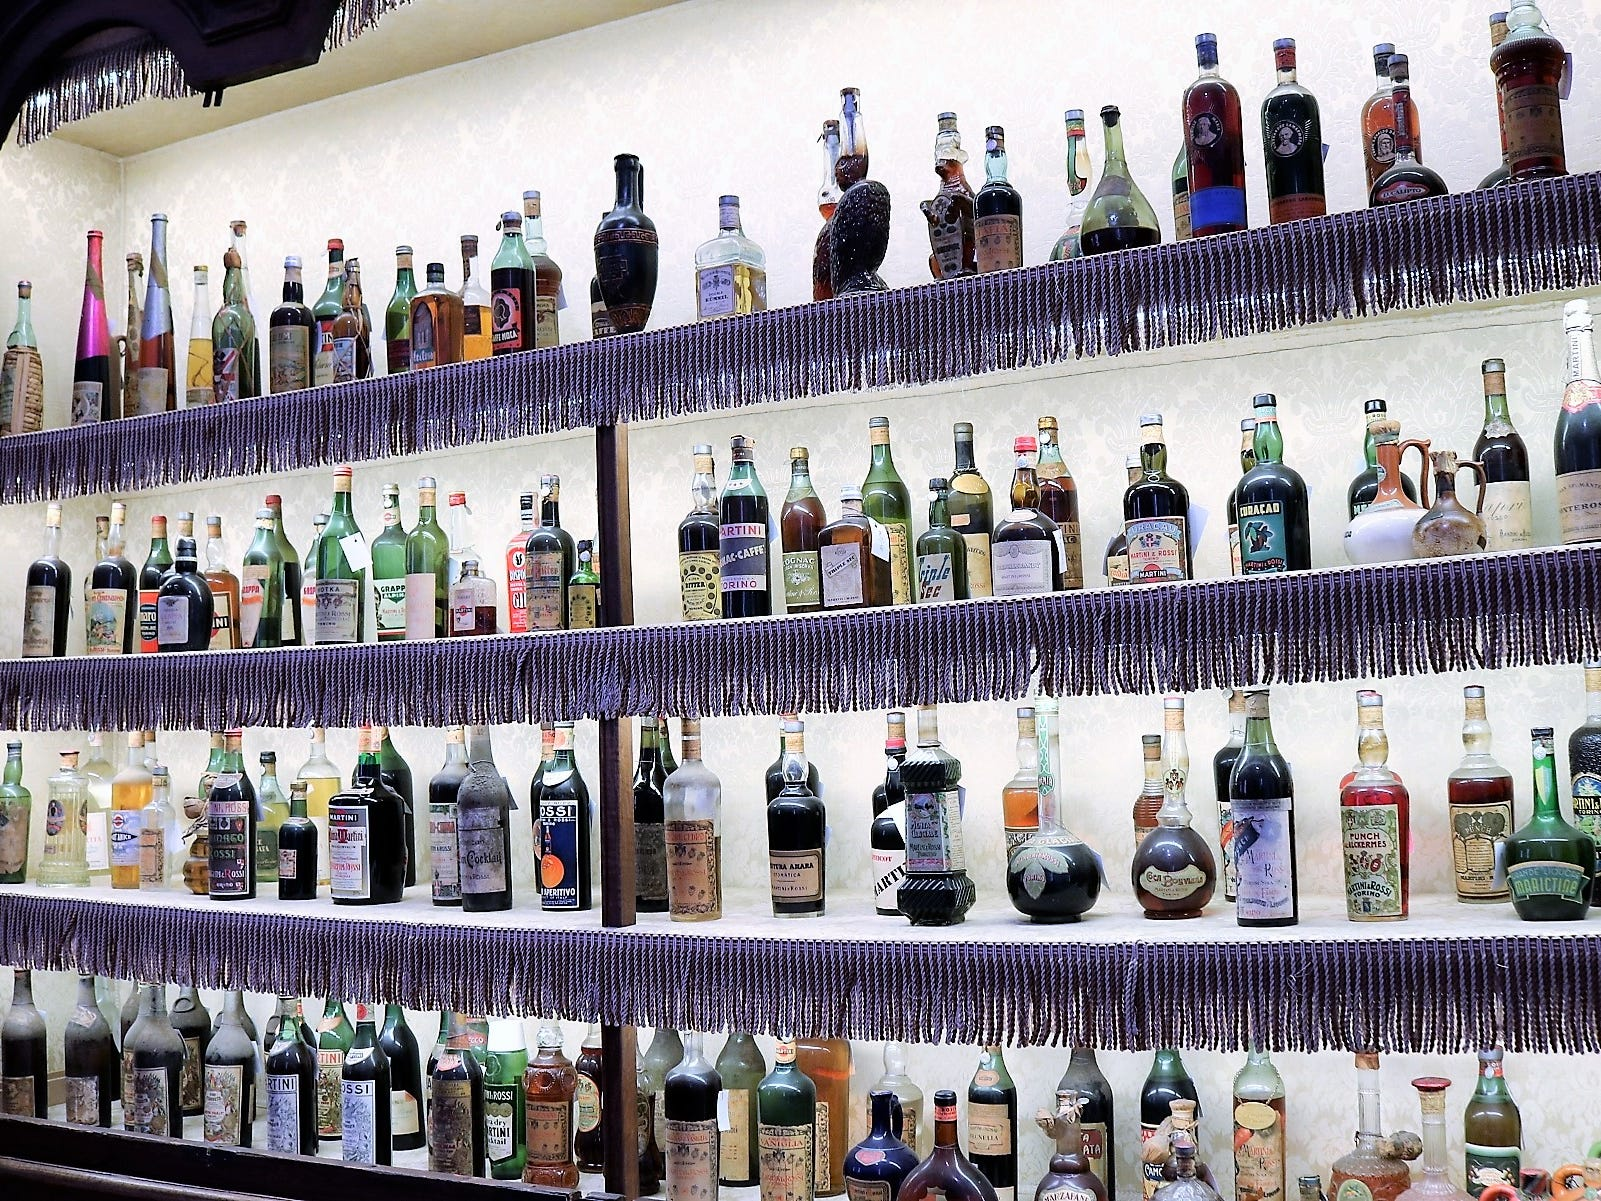 The pièce de résistance at Casa Martini may be this massive cabinet showcasing an assortment of vintage bottles and products dating all the way back to the company's founding.